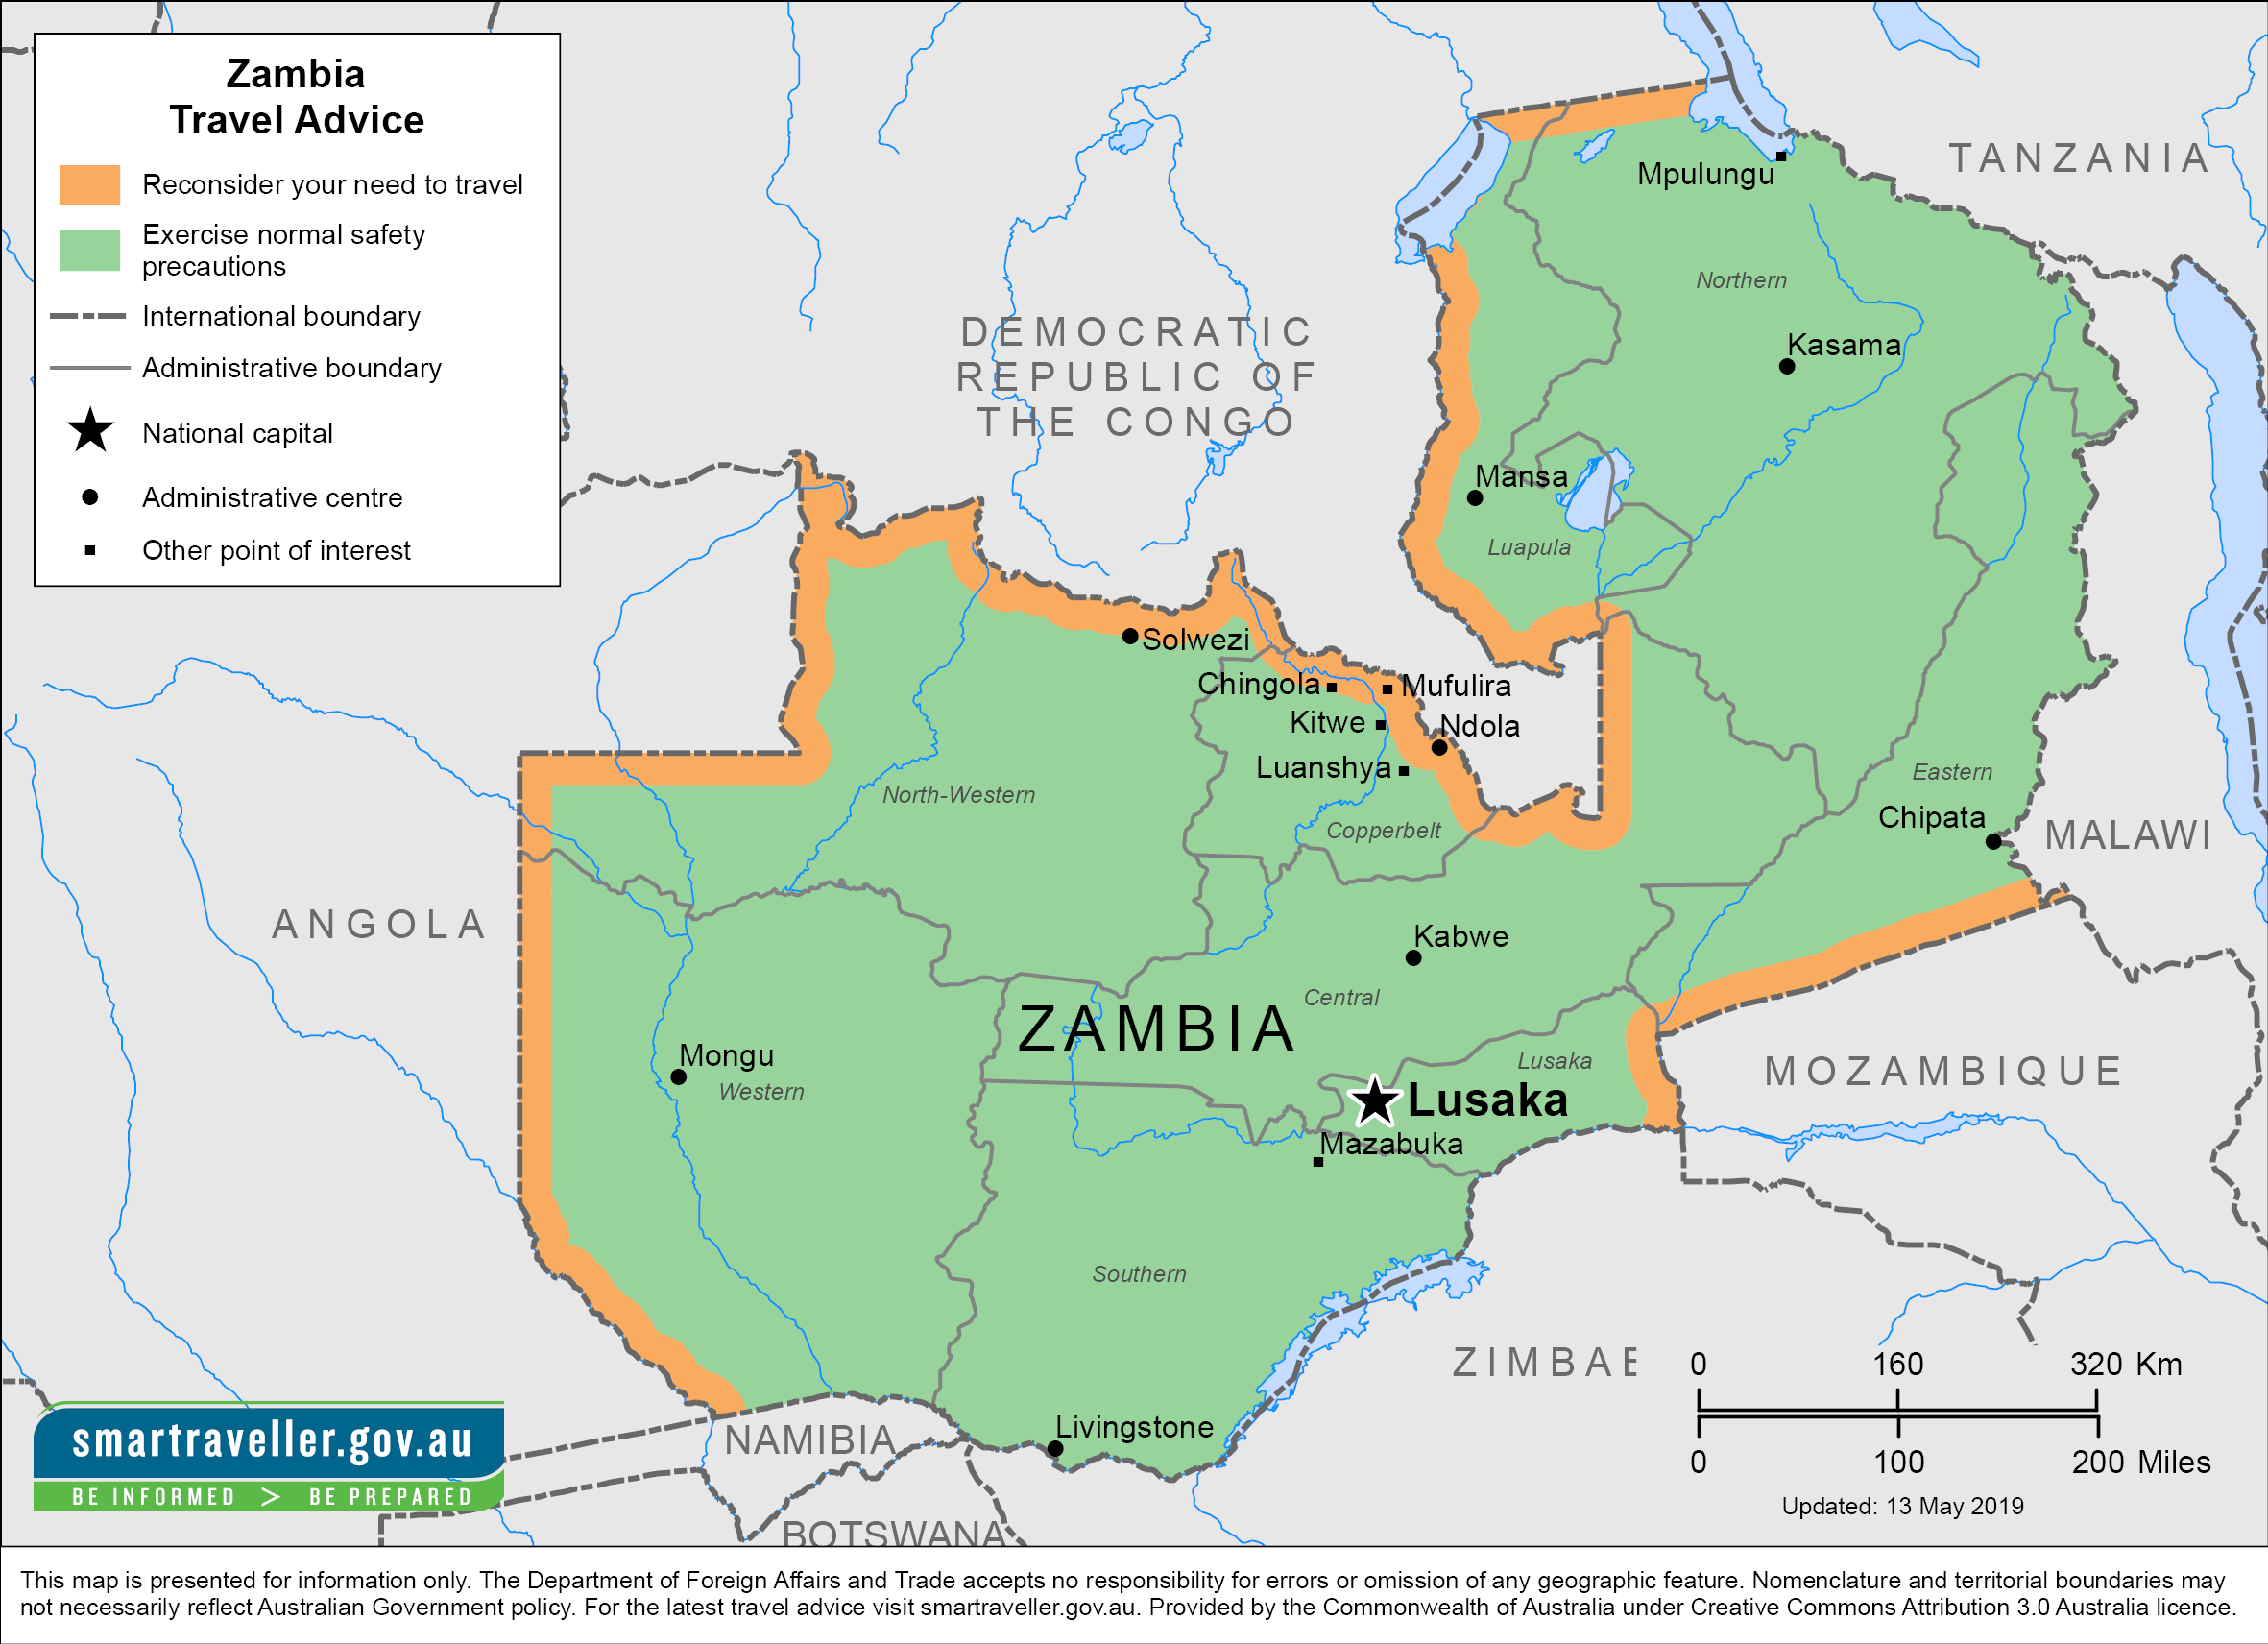 Zambia-Travel-Insurance | AARDY.com